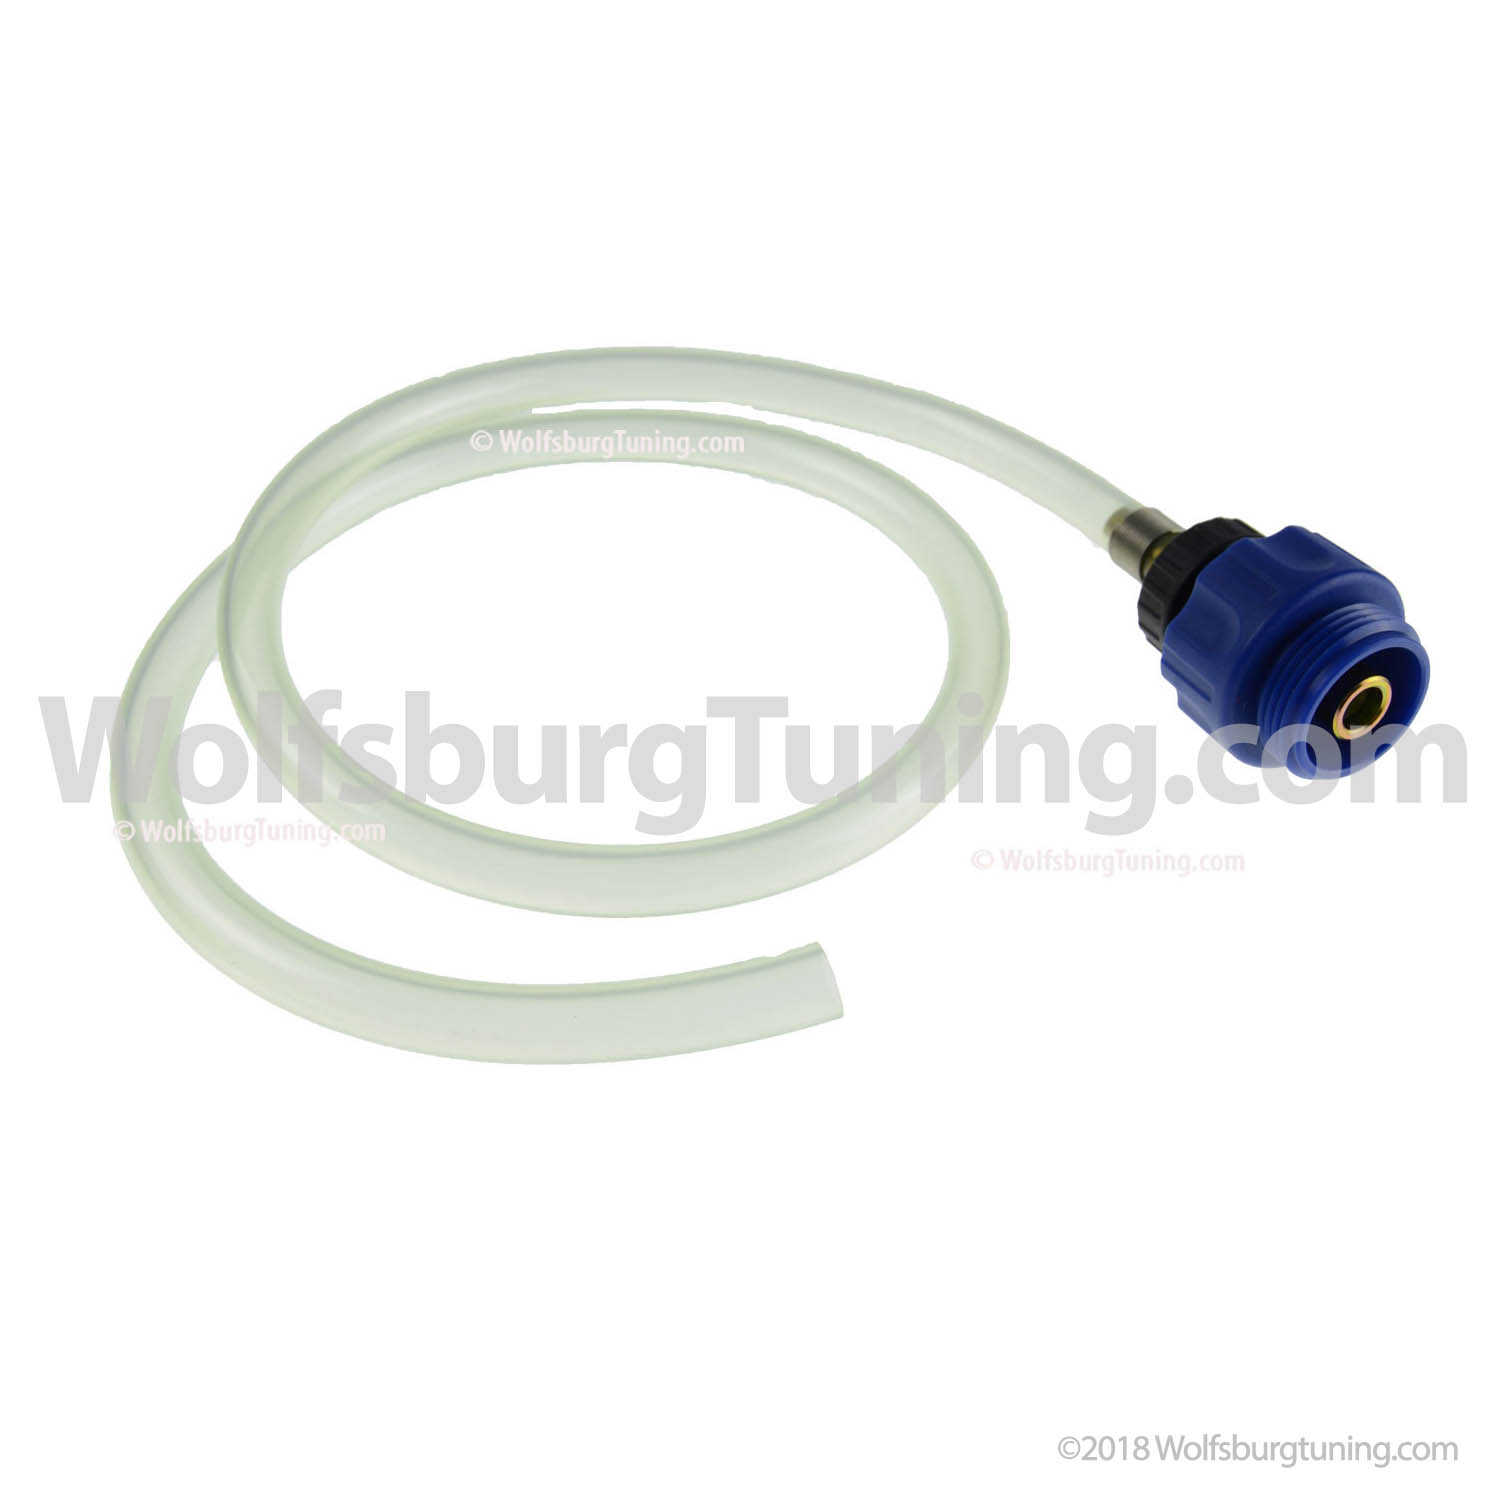 Cartridge Oil Filter Drain Tool